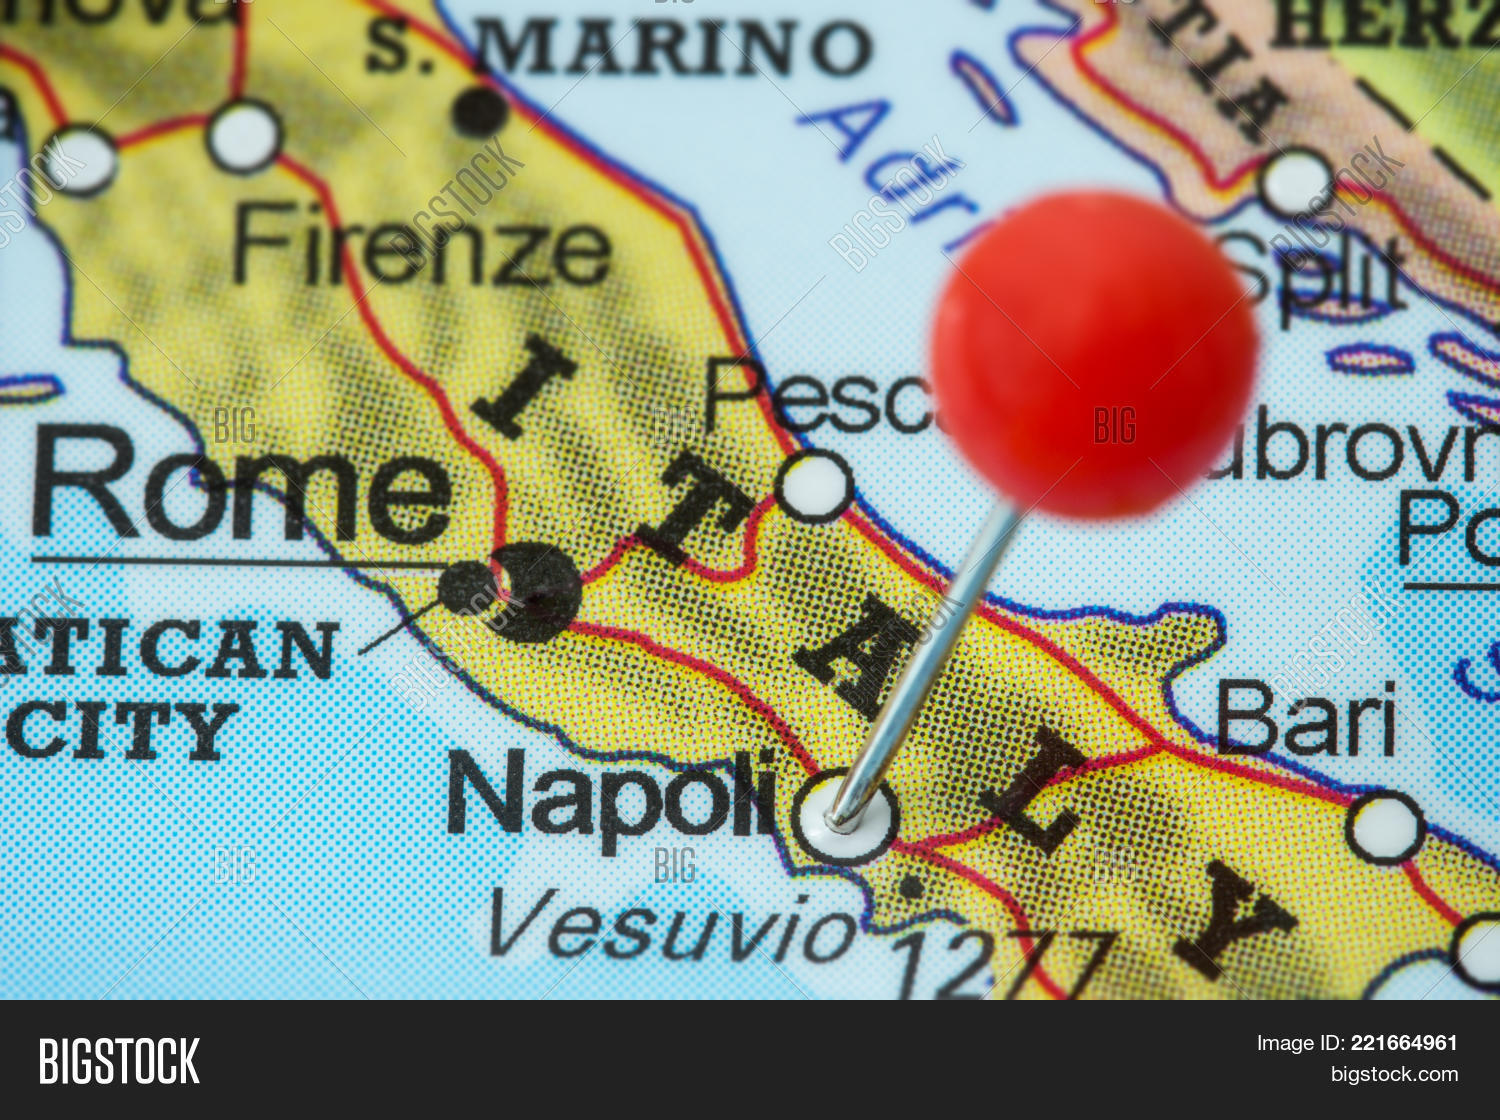 Close- Red Pushpin Map Image & Photo (Free Trial) | Bigstock on santa maria delle grazie milan italy, close up map of poland, close up map of vietnam, close up map of eu, close up map of quebec, close up map of mediterranean, close up map of washington state, close up map of the world, close up map of bahamas, close up map of kuwait, close up map of venezuela, close up map of grenada, close up map of polynesia, close up map of north america, close up map of florence, close up map of ancient greece, close up map of guatemala, close up aerial view maps, close up map of nepal,